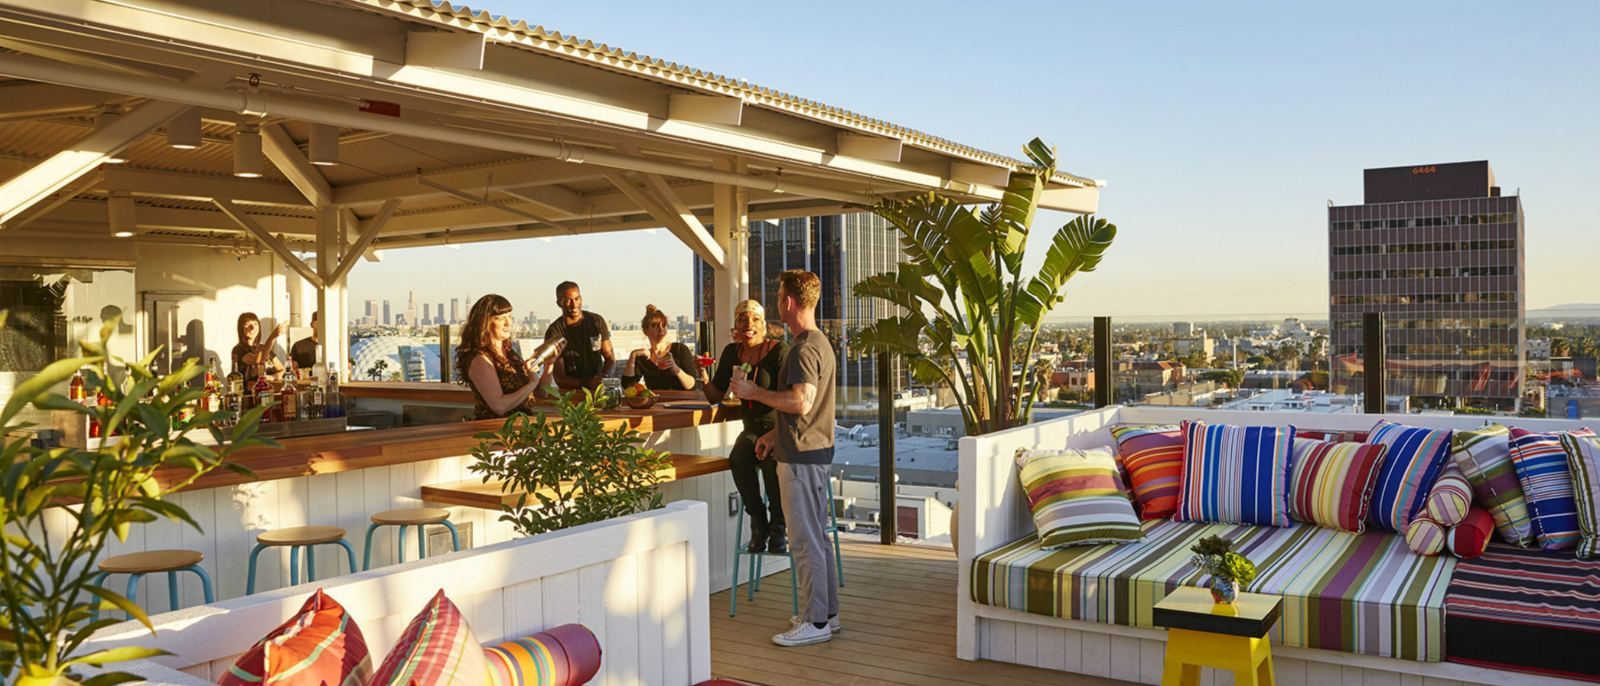 Rooftop-Daybeds-Bar---MAMA-LA